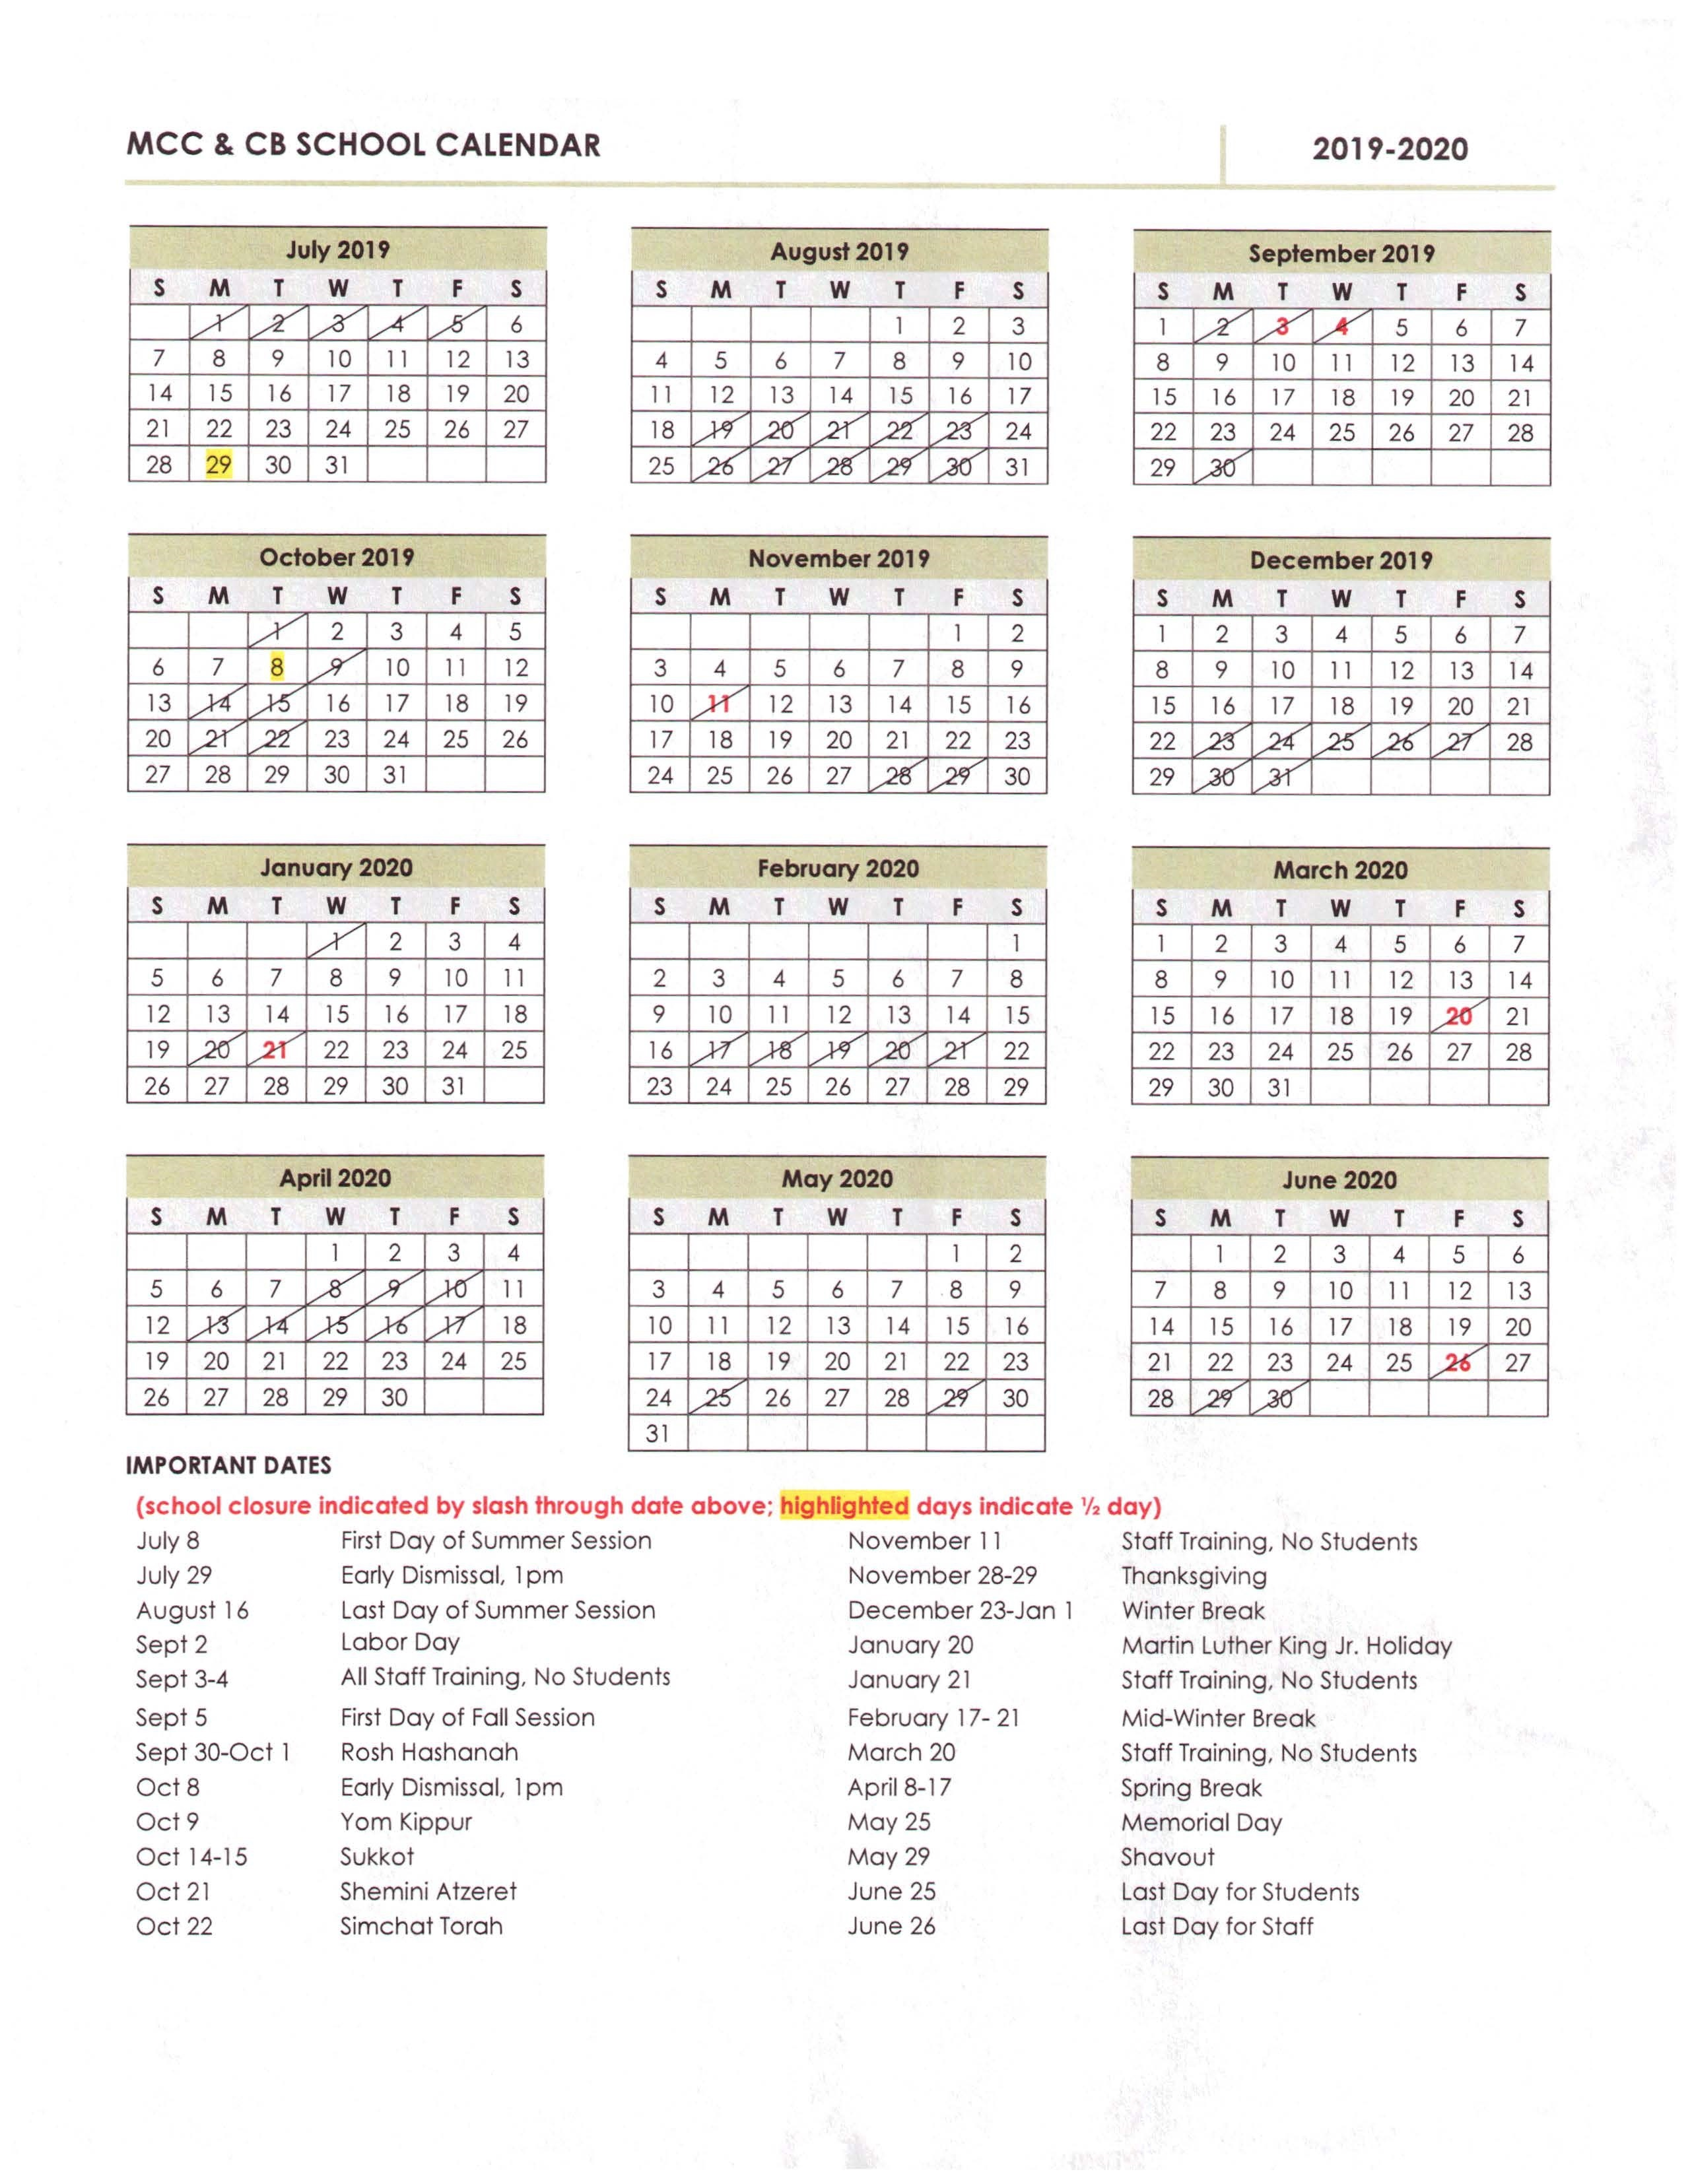 Nyc School Calendar 2020.Mcc Calendar Mcc School Calender 2018 Manhattan Childrens Center